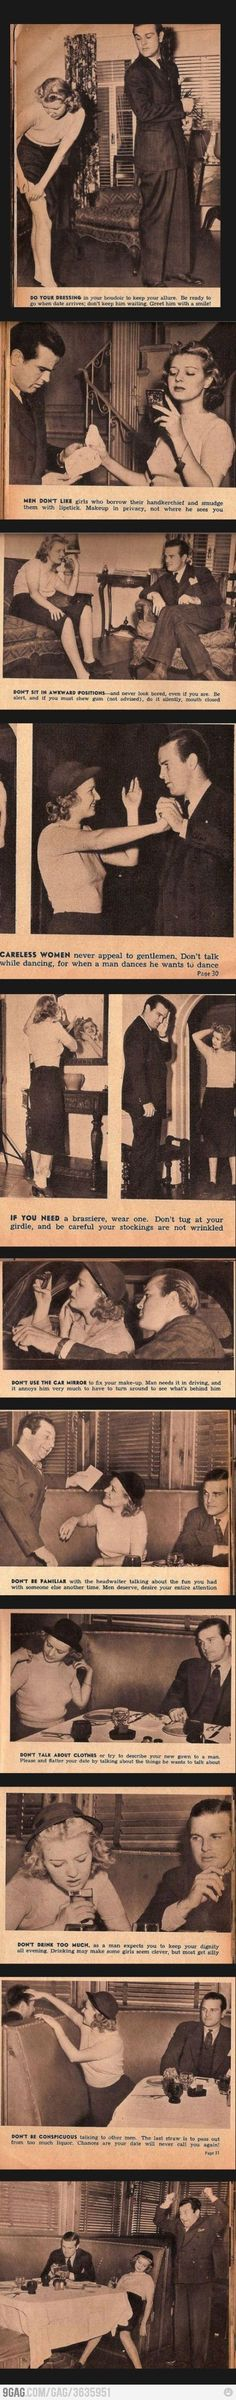 Vintage tips for women!